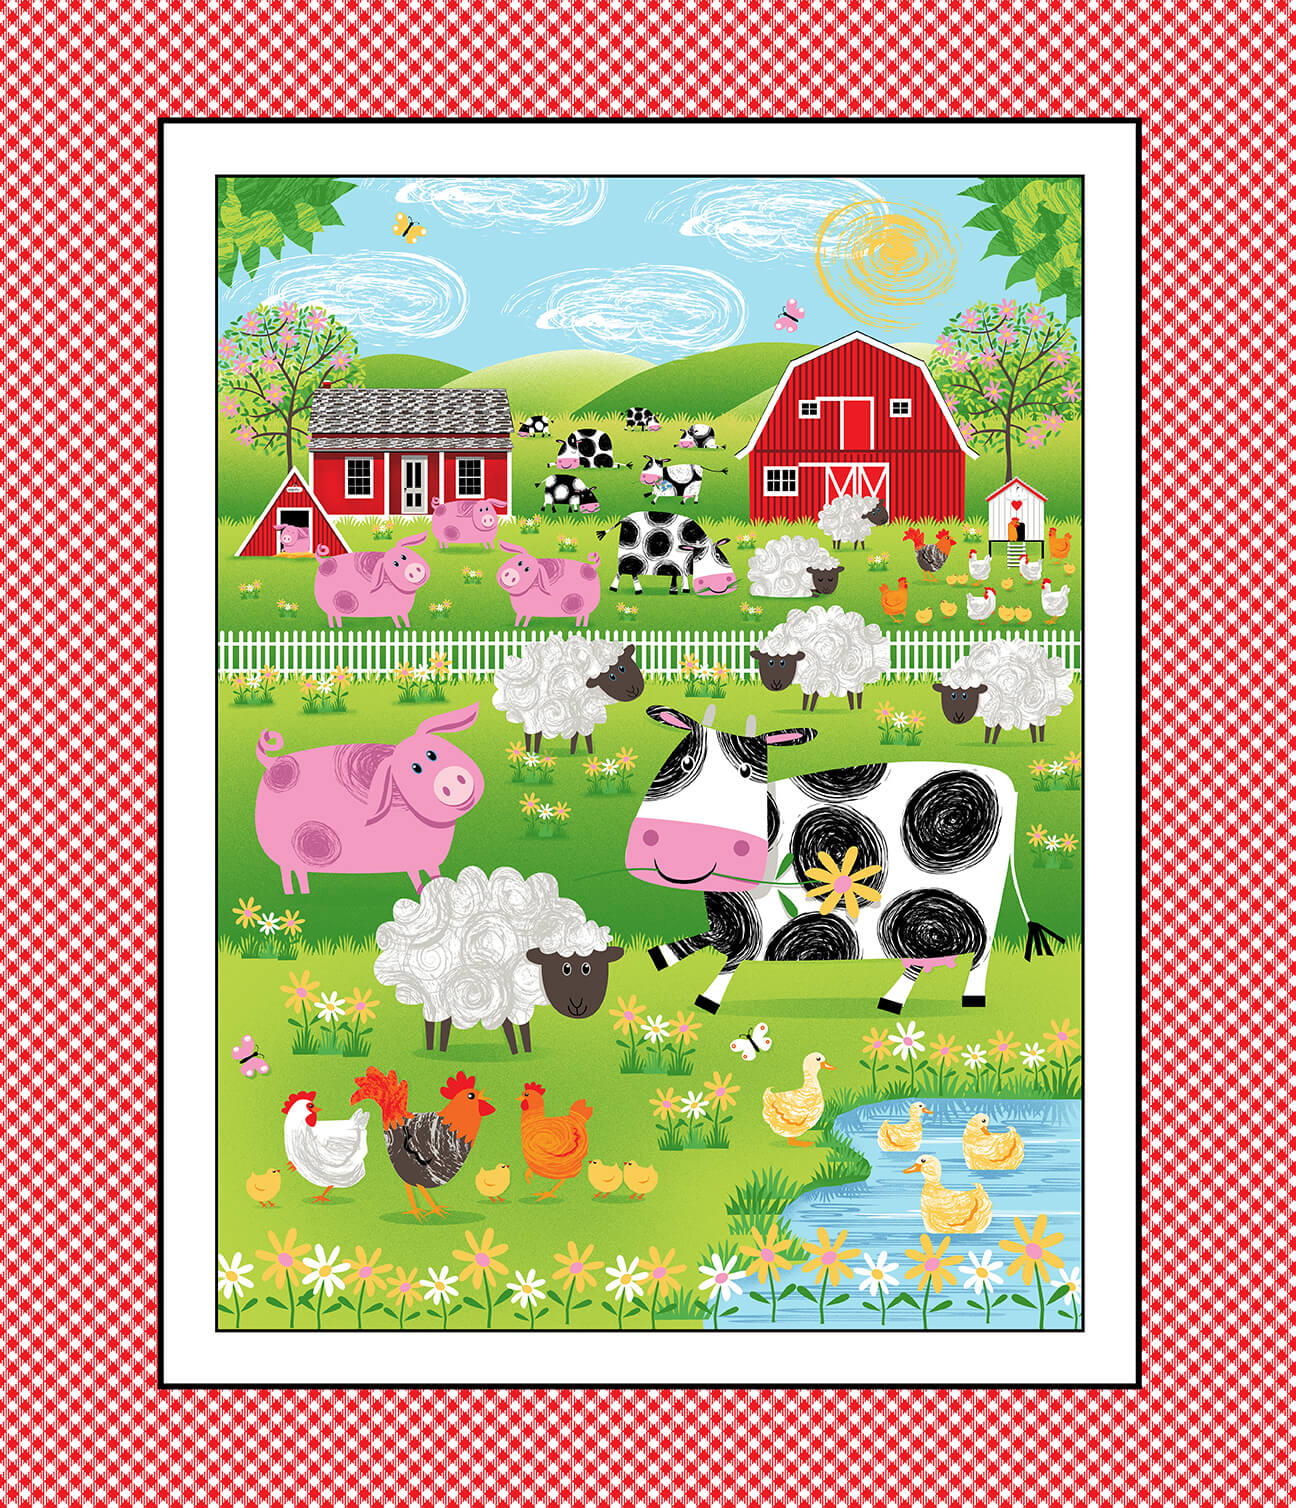 Best Friends Farm - Animal Banner Panel